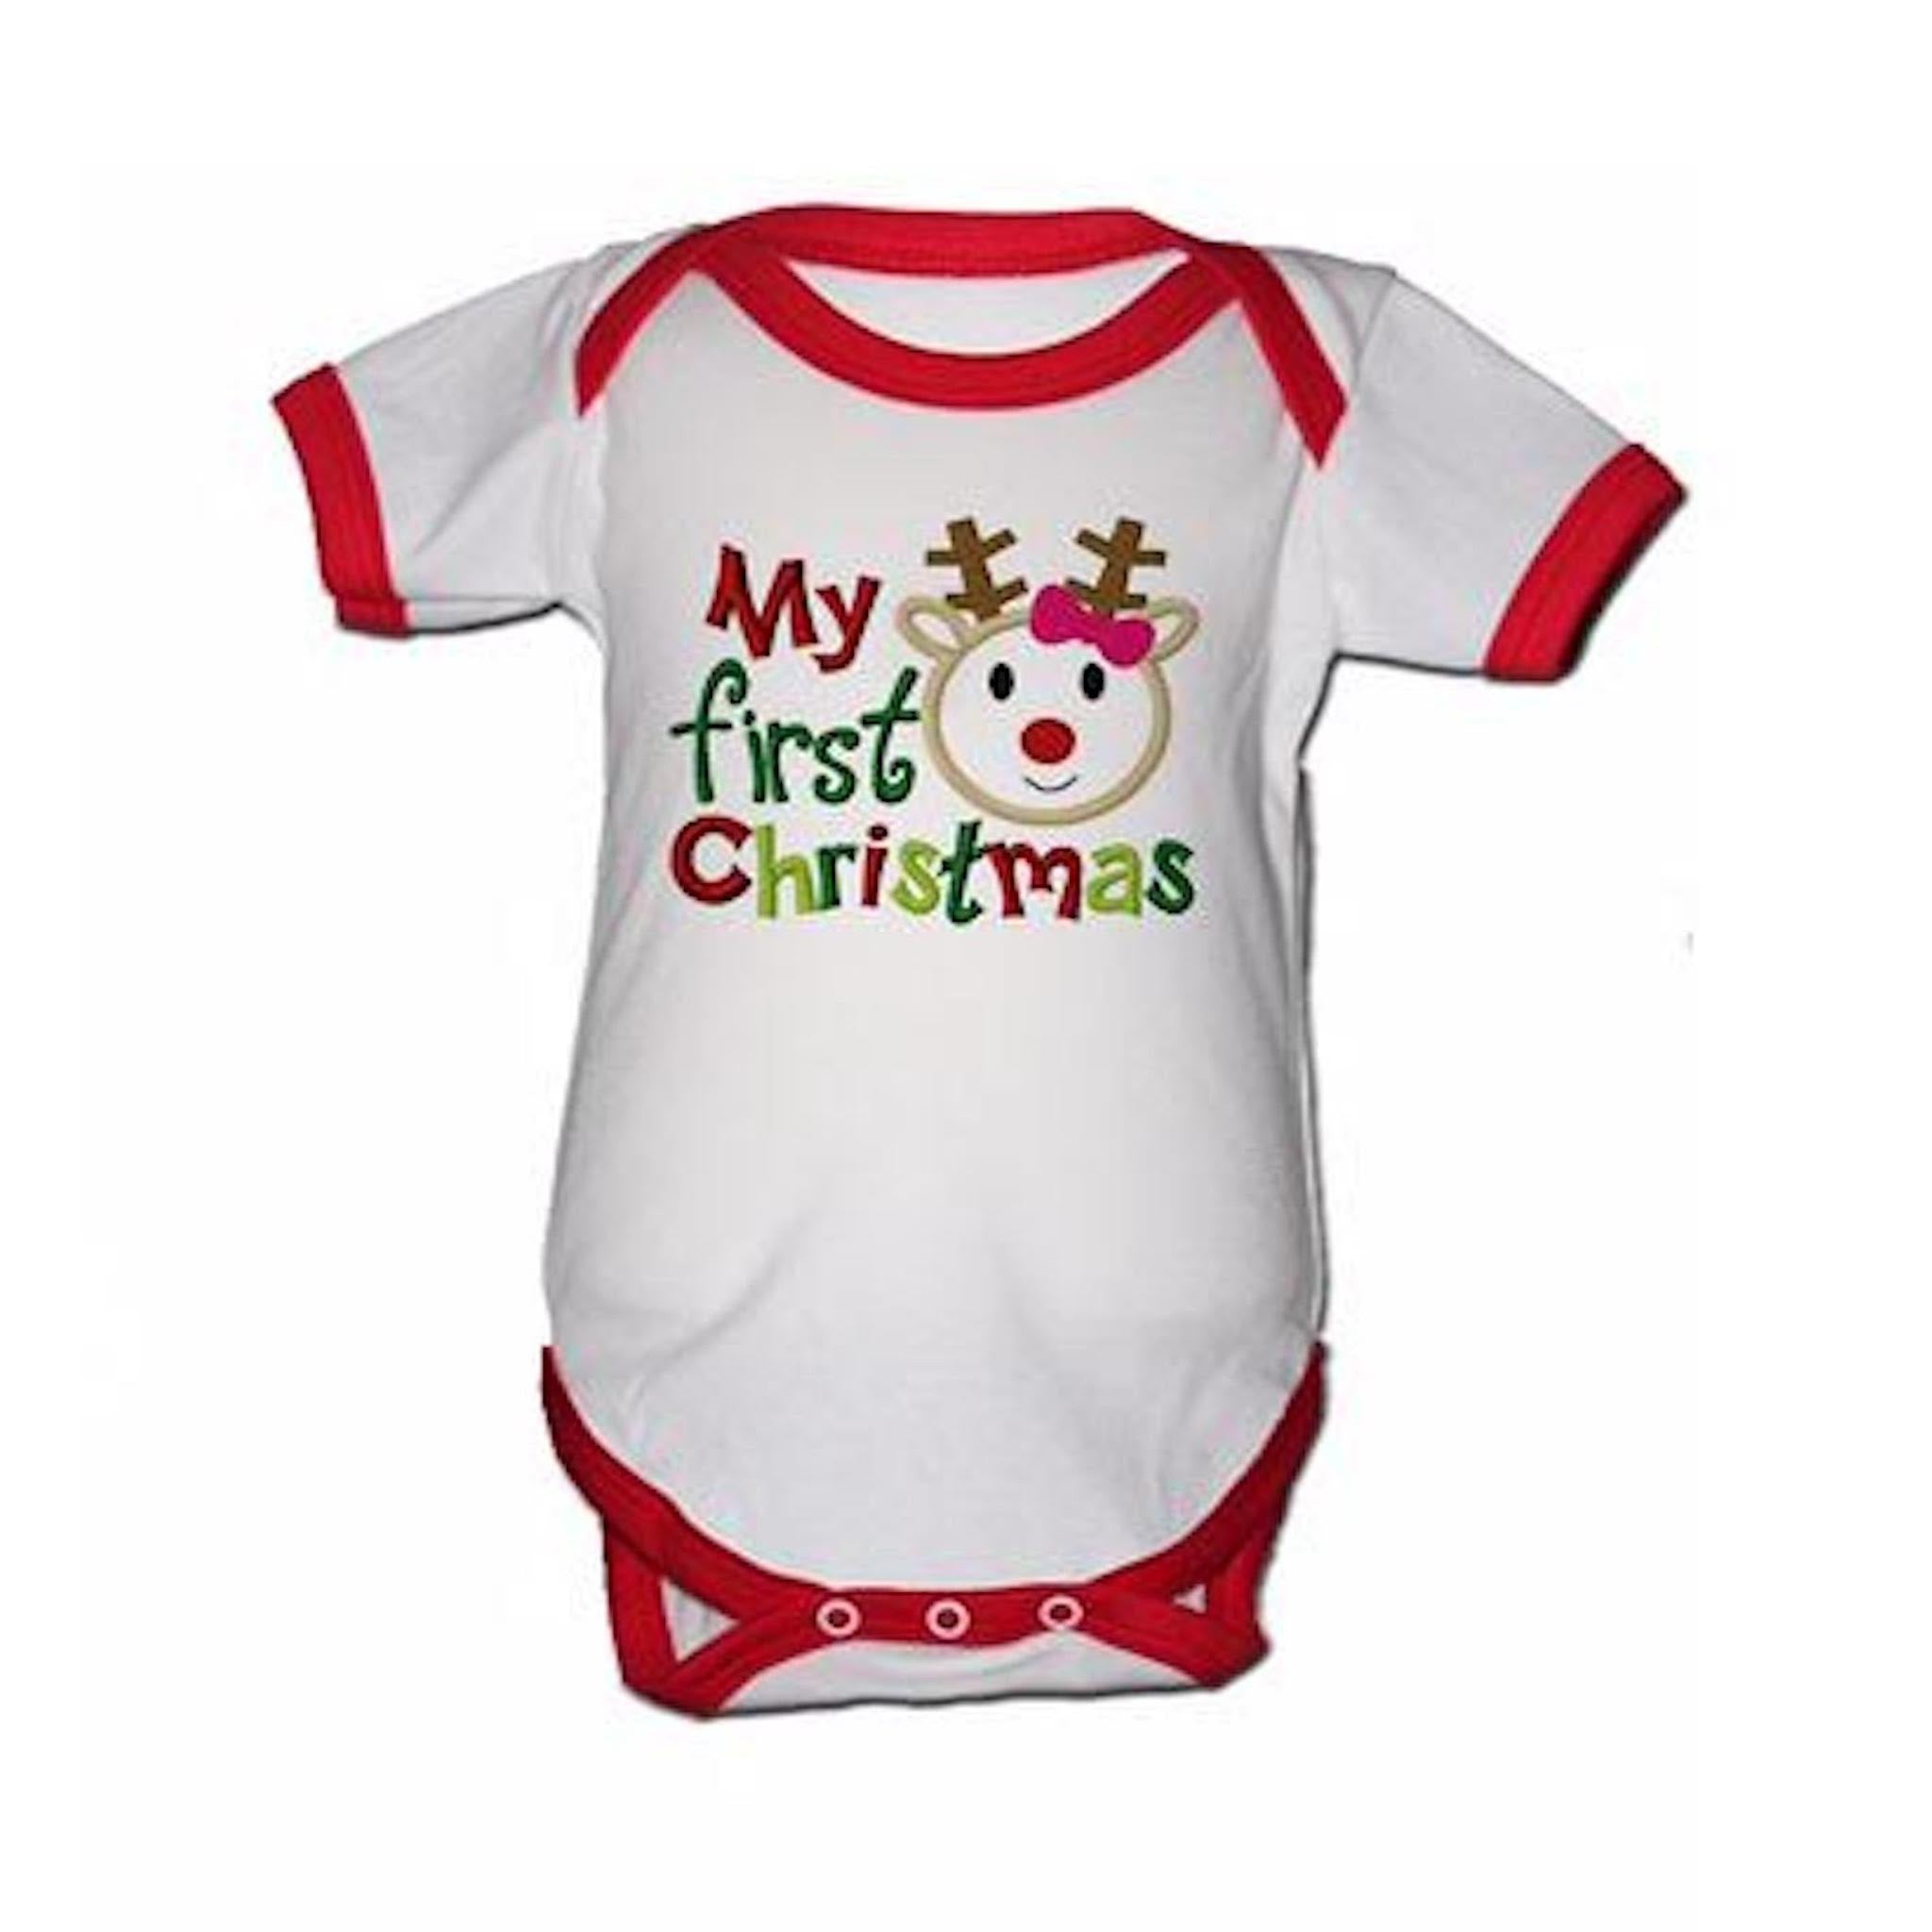 7a5f6d047 ... baby 1st Christmas, unisex baby Christmas bodysuit, my first Christmas  bodysuit ...